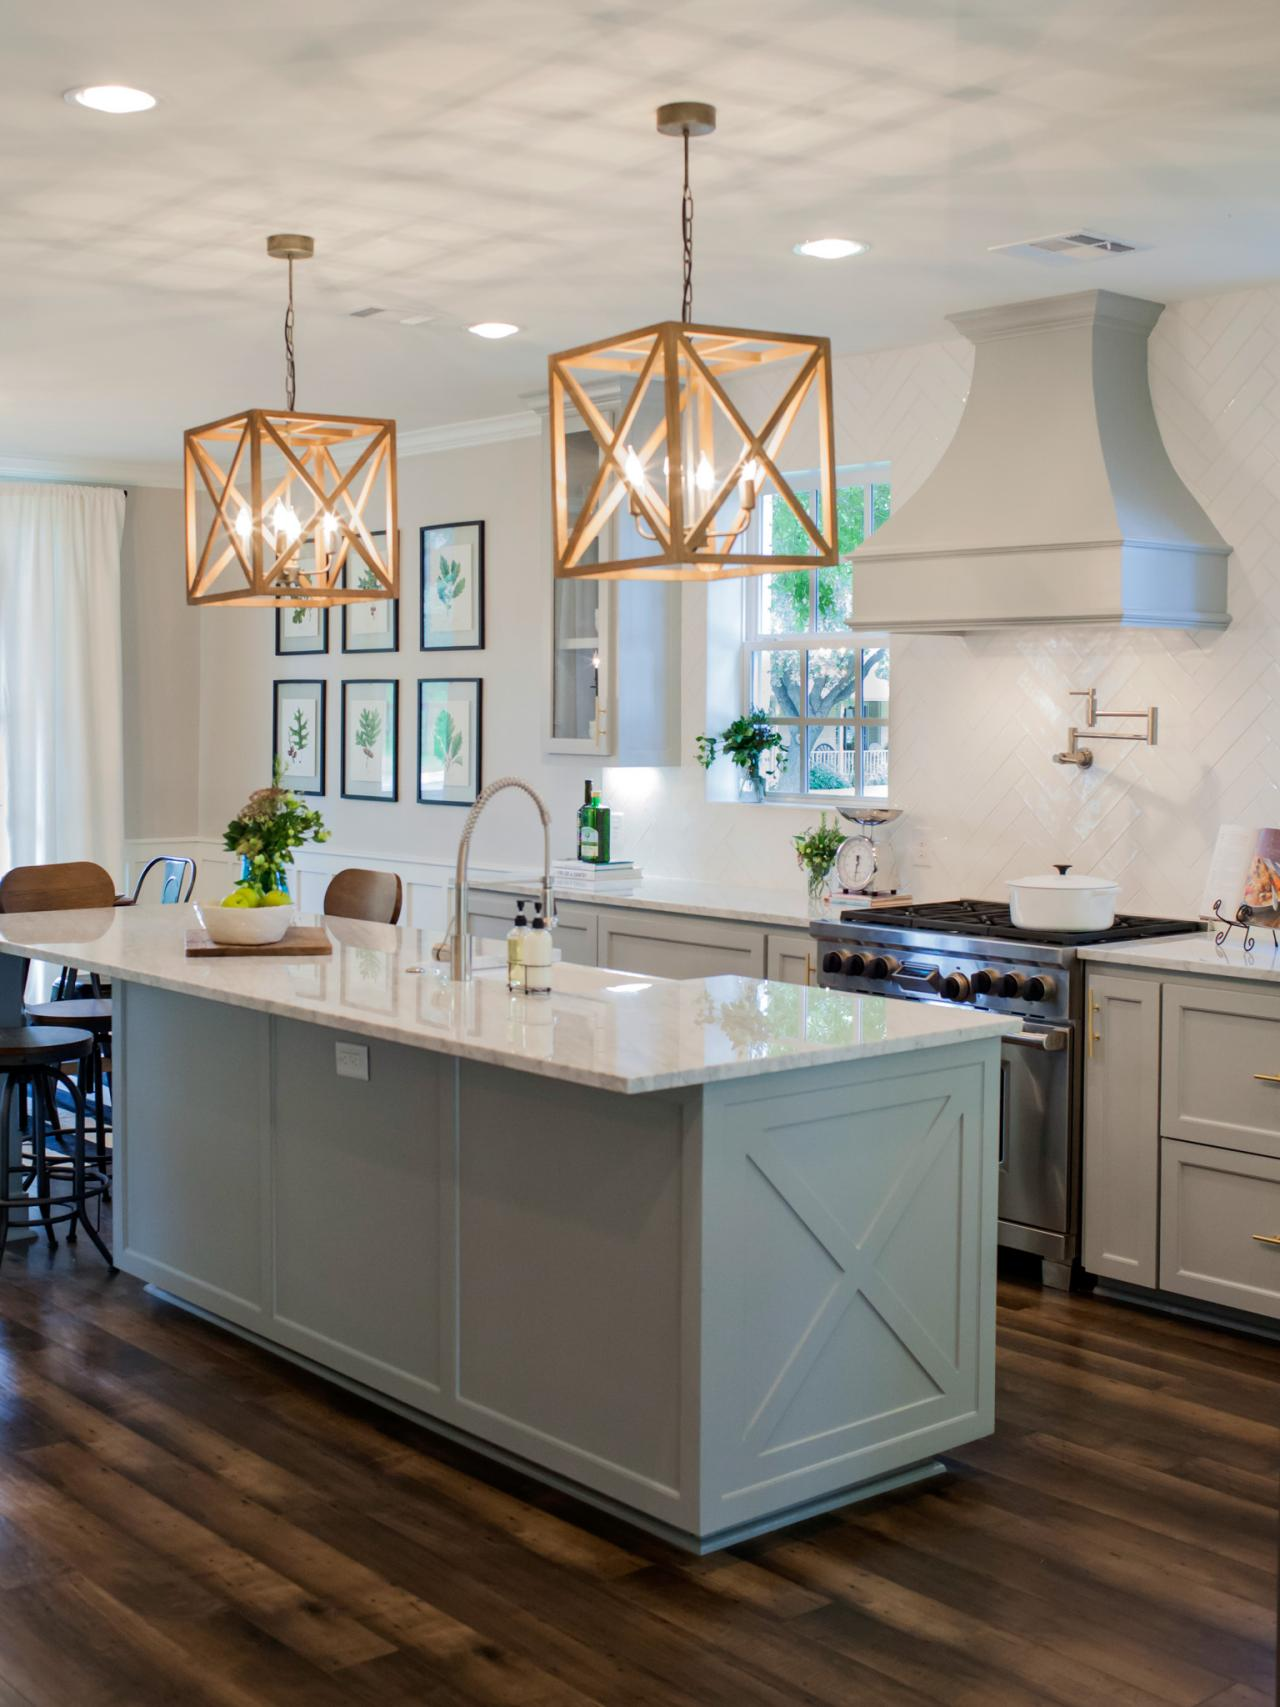 Photos hgtv 39 s fixer upper with chip and joanna gaines hgtv - Kitchen island color ideas ...